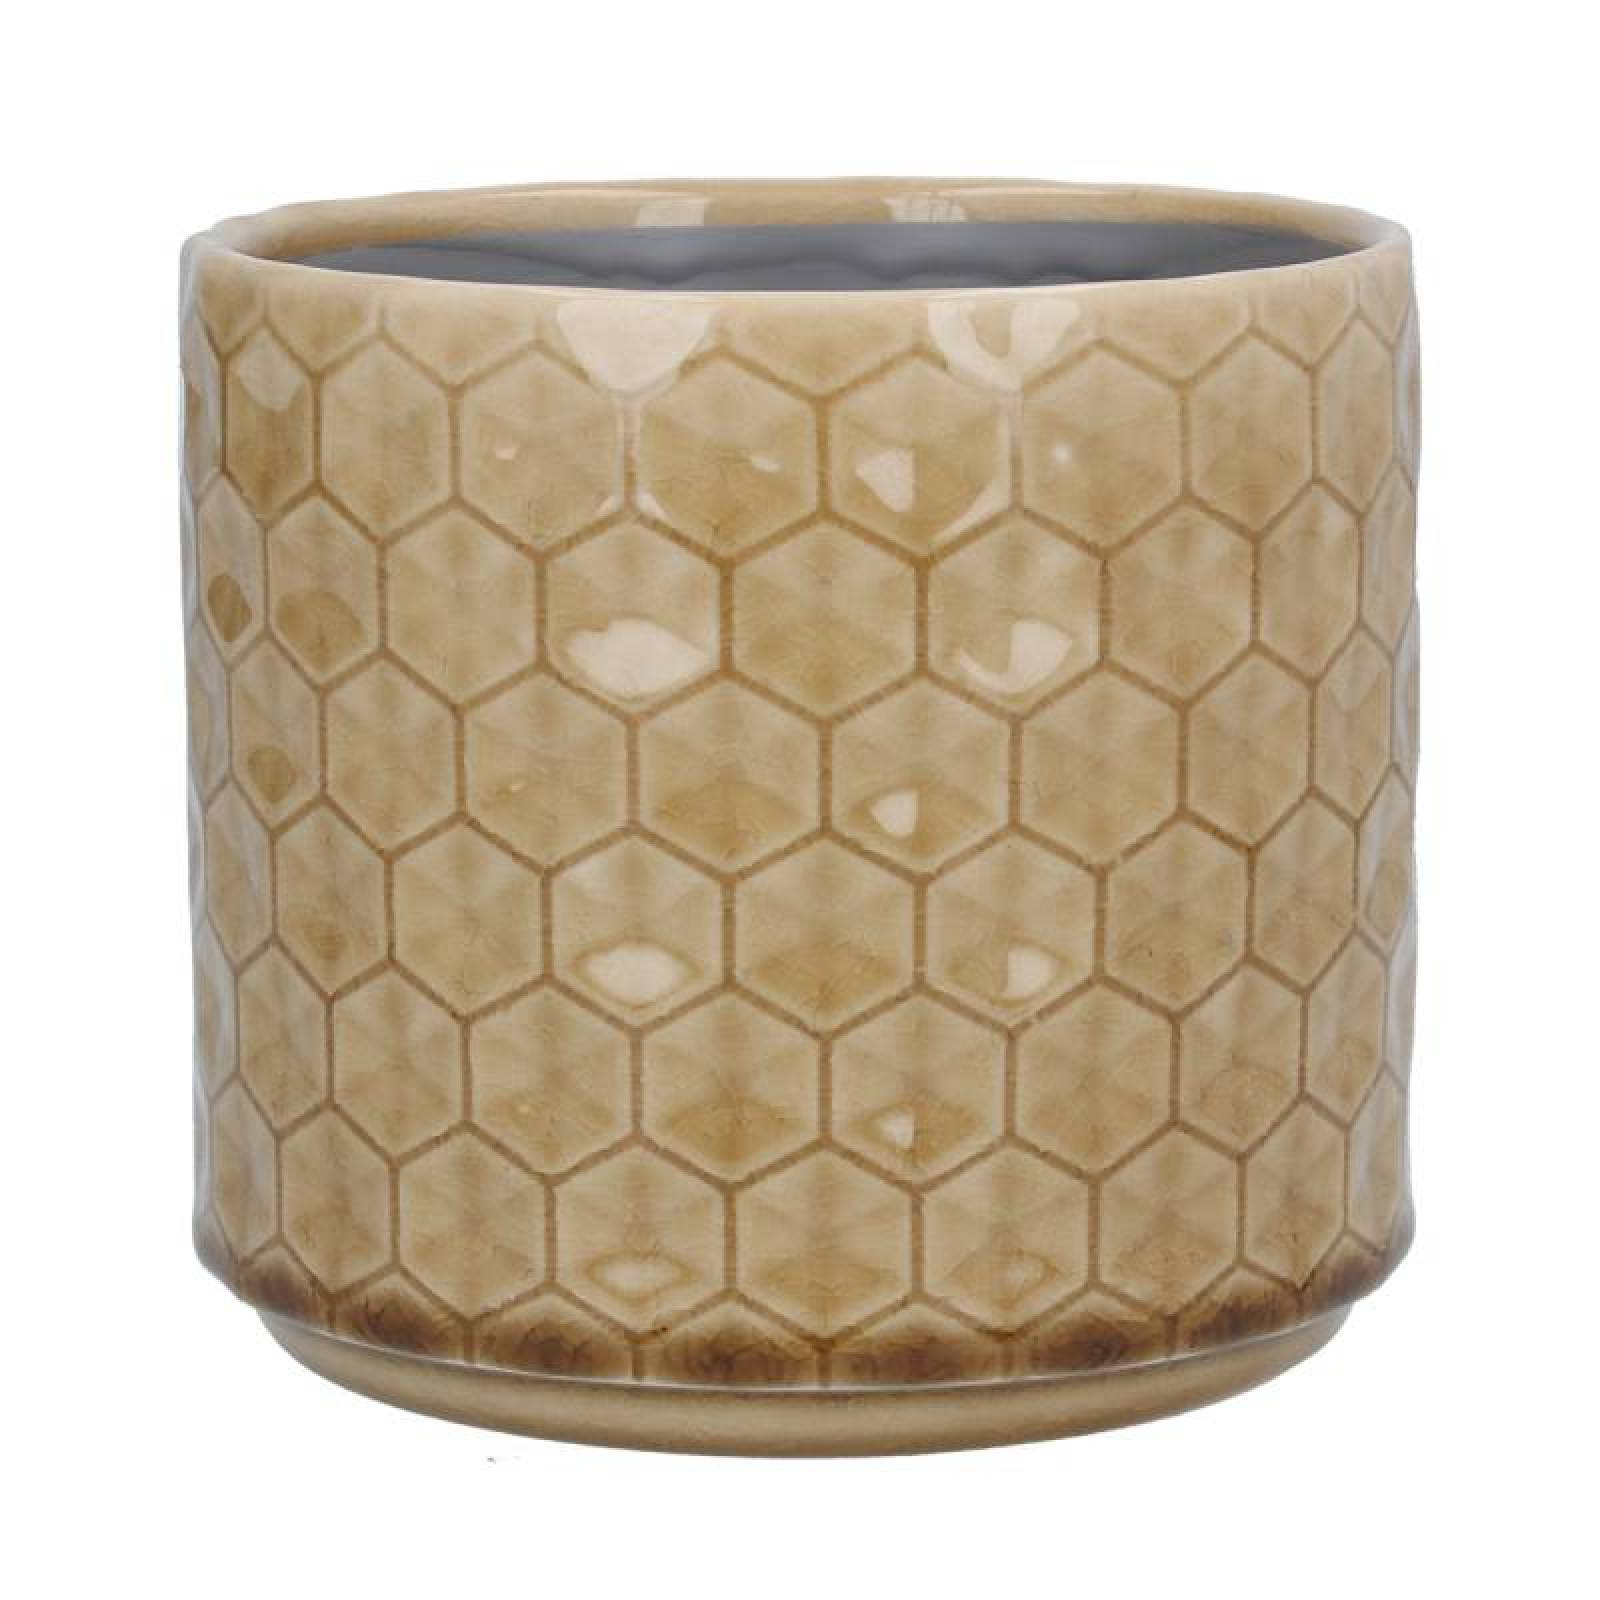 Small Honeycomb Ceramic Flowerpot Cover In Sand